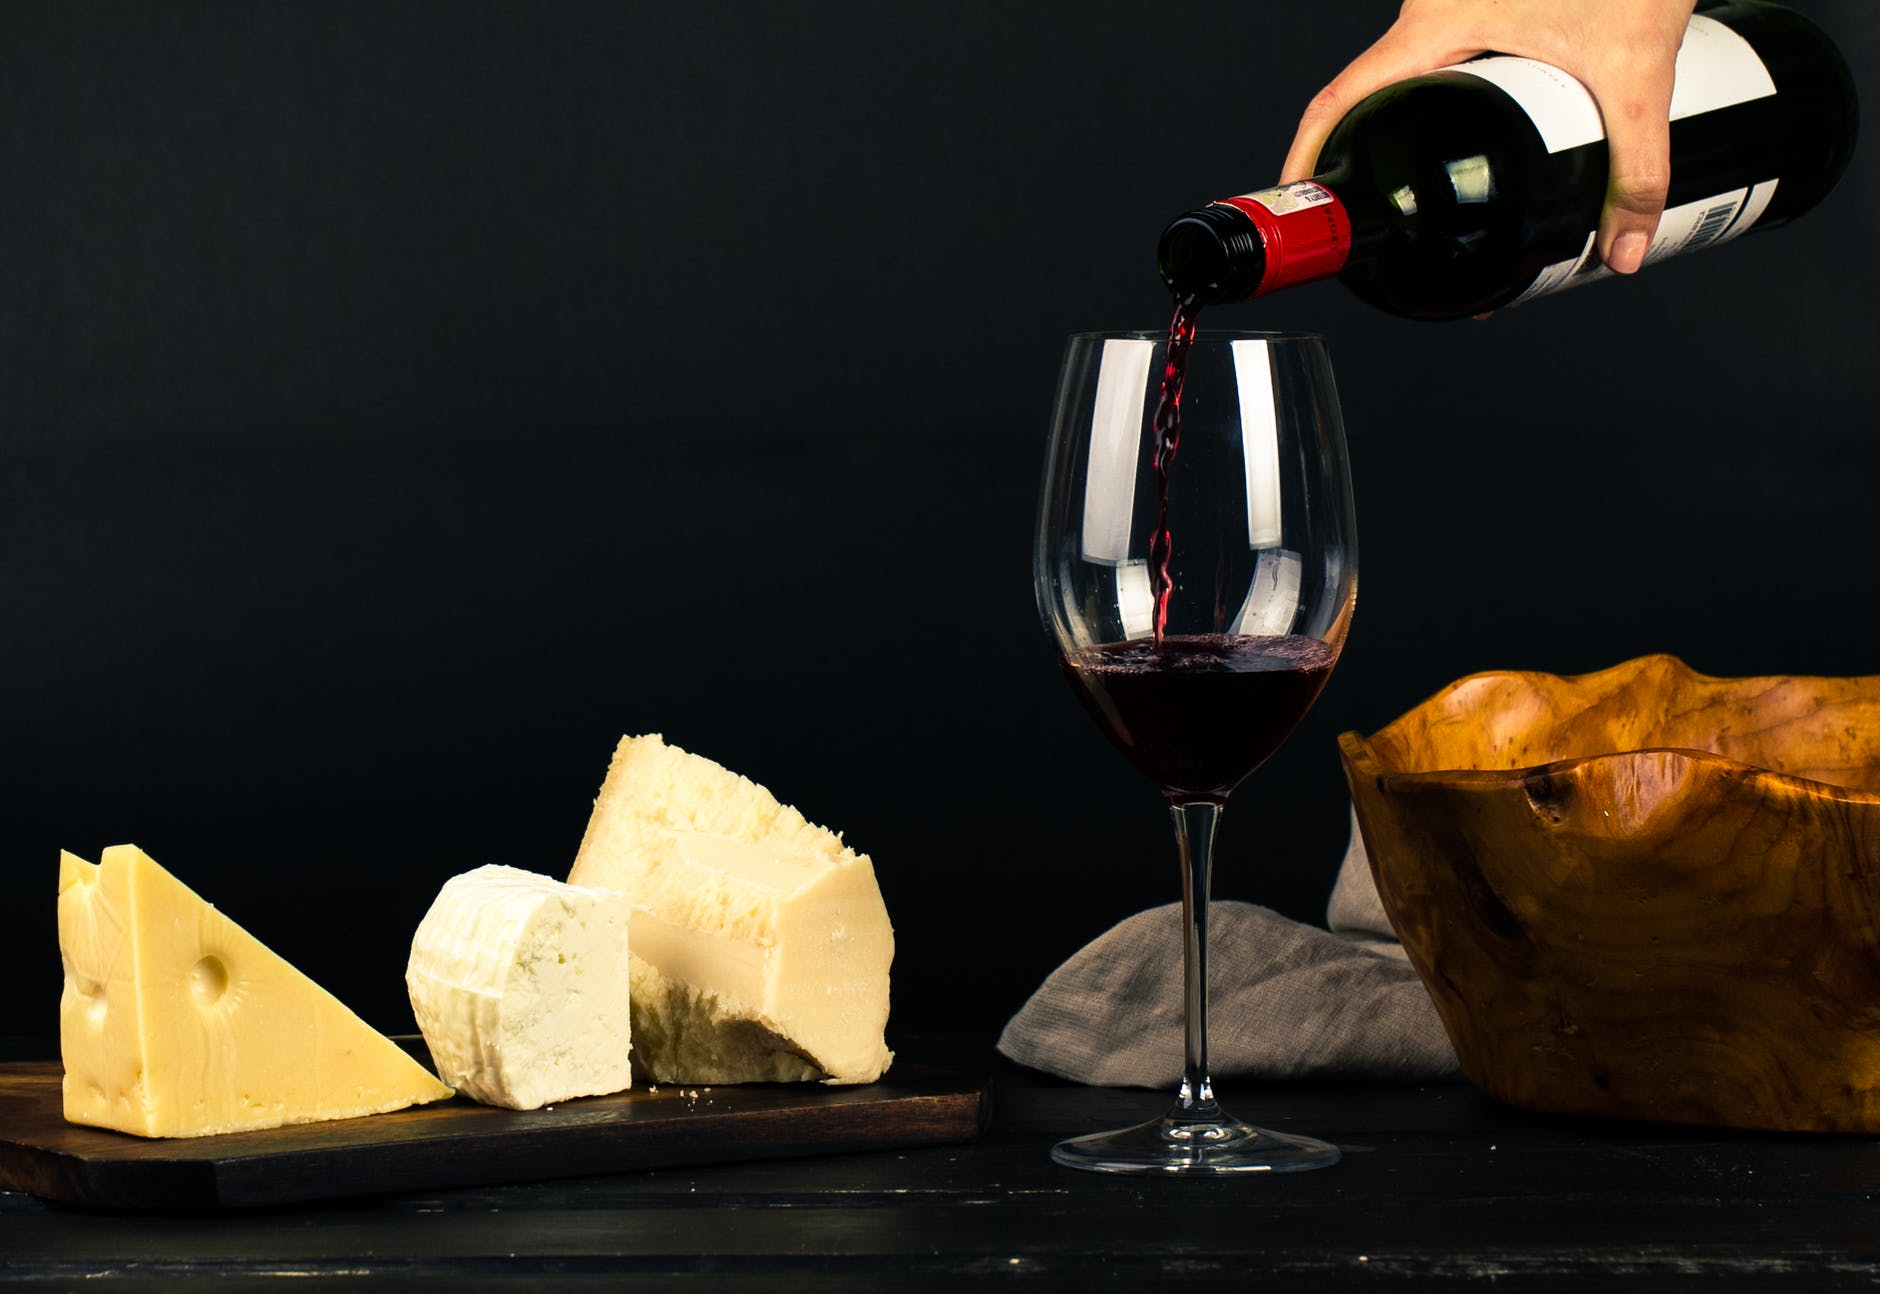 Photo of person pouring wine into glass beside some cheese pairings.